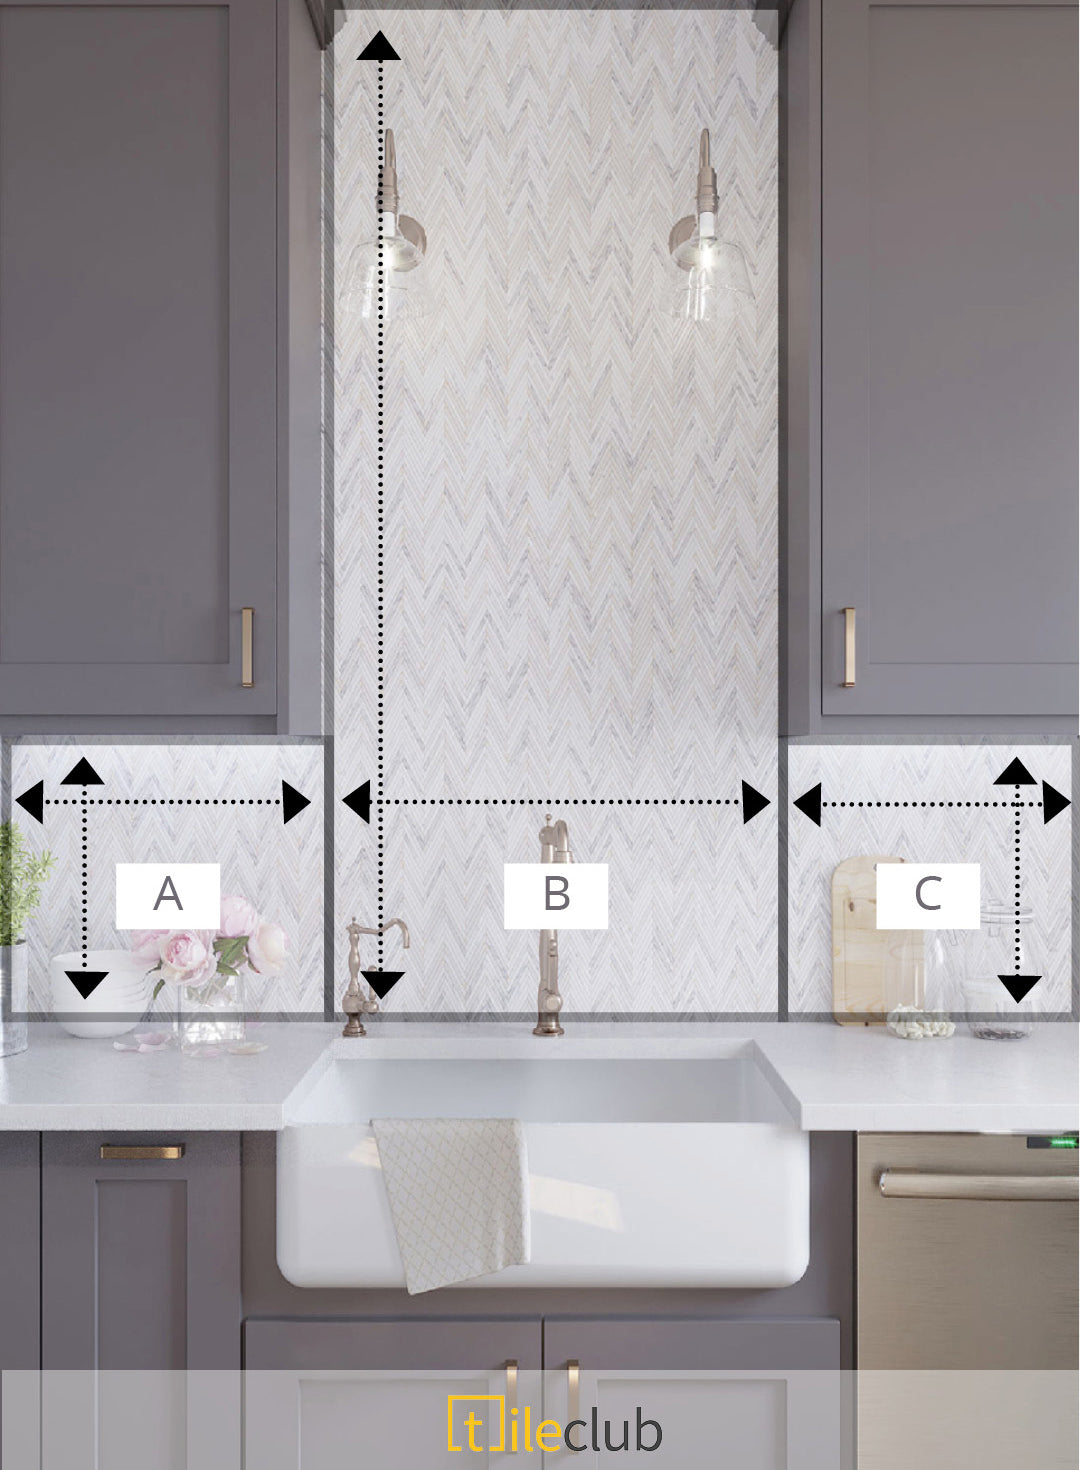 How to Calculate How Much Tile you Need to Order for a Kitchen Backsplash with Cabinets and Appliances